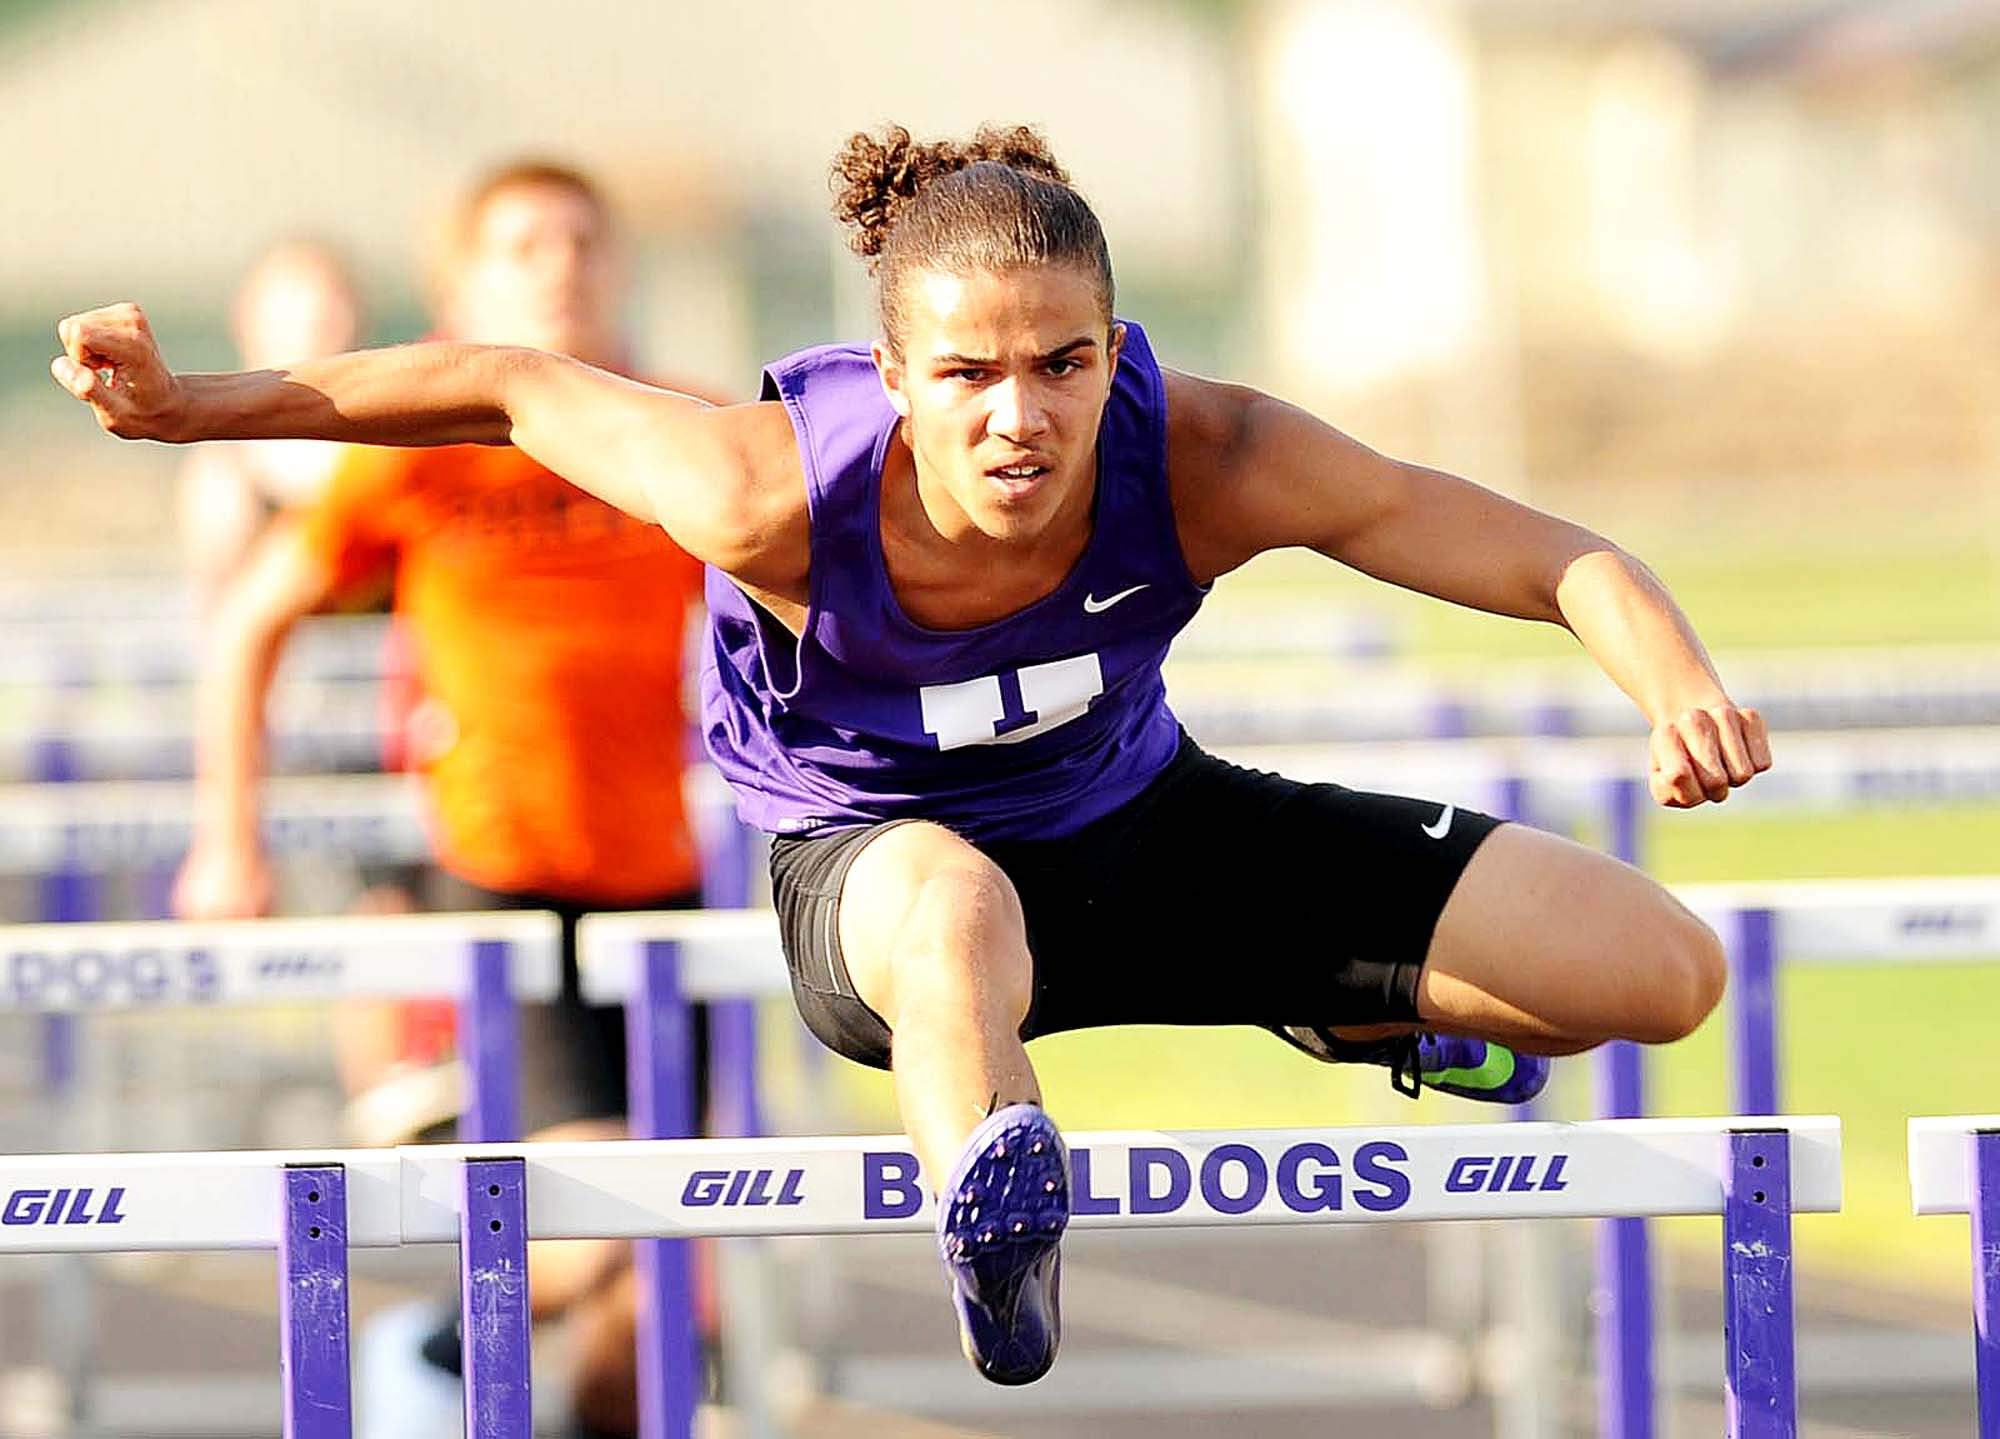 Niko Neal took first place in the 110 meter high hurdles, shown here, the 300 meter intermediate hurdles and the long jump at the Harrisburg Open, held at Taylor Field.